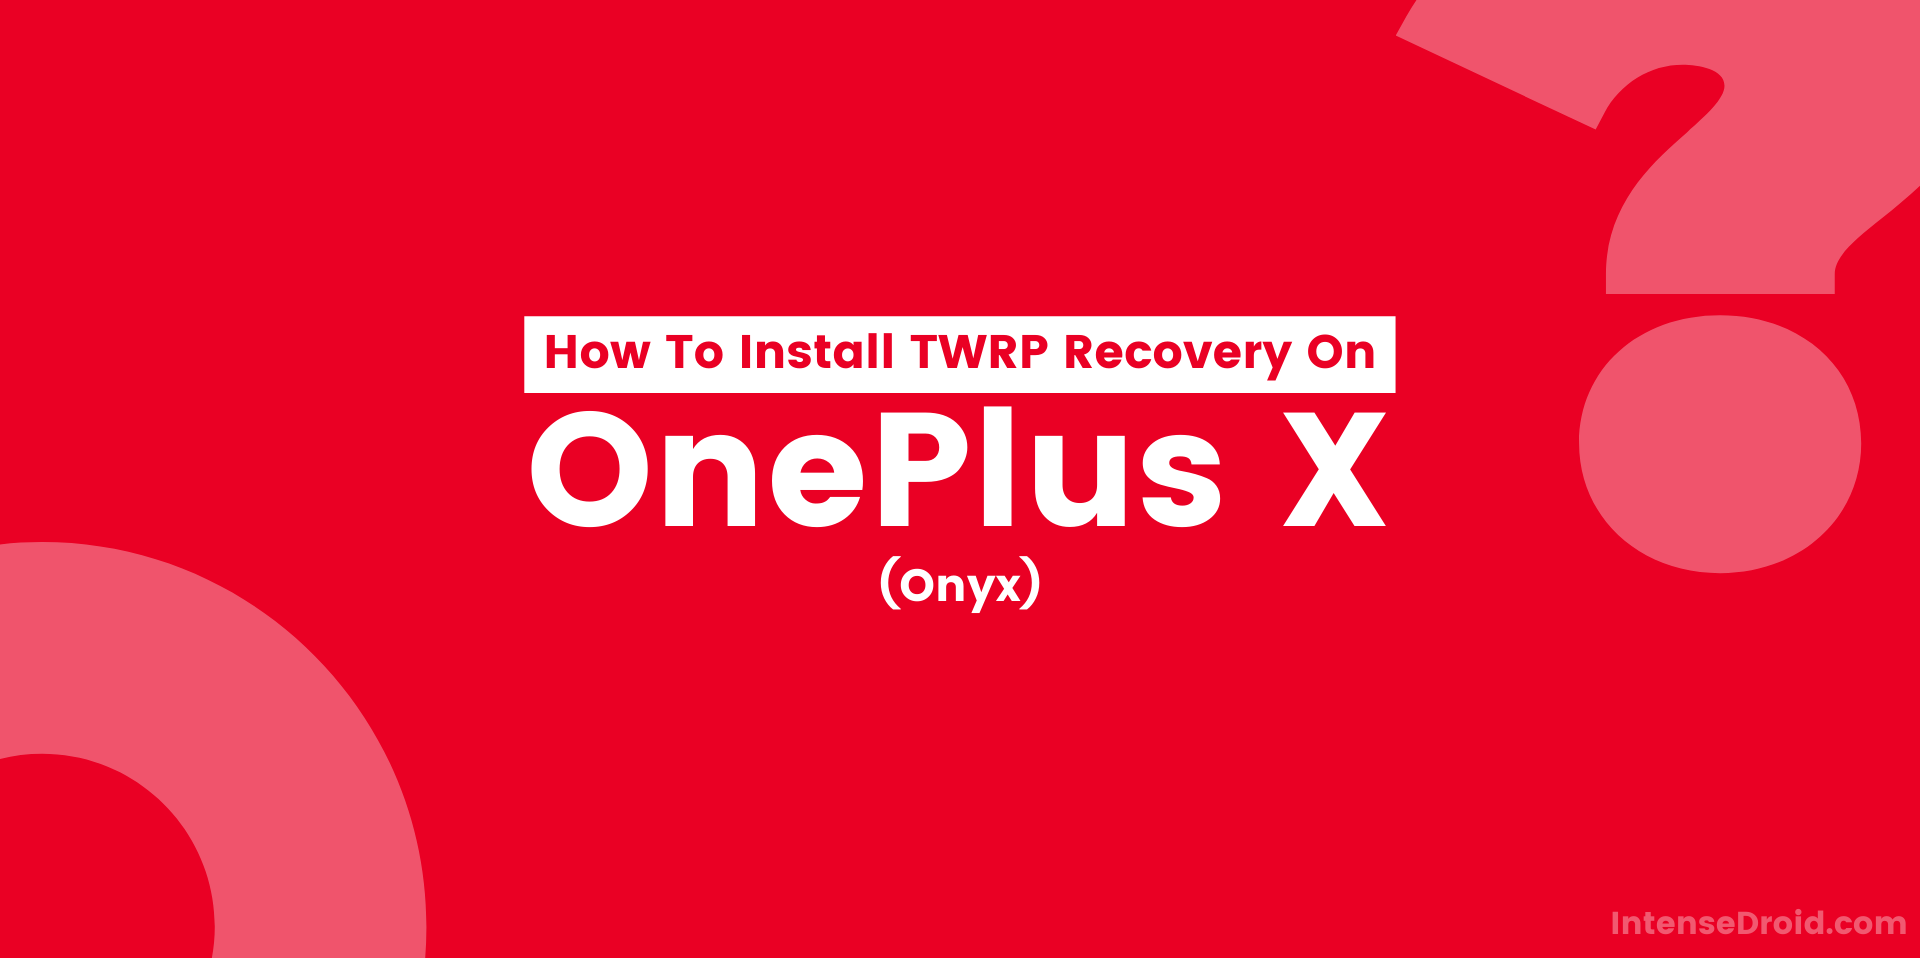 How To Install TWRP Recovery on OnePlus X (Onyx)